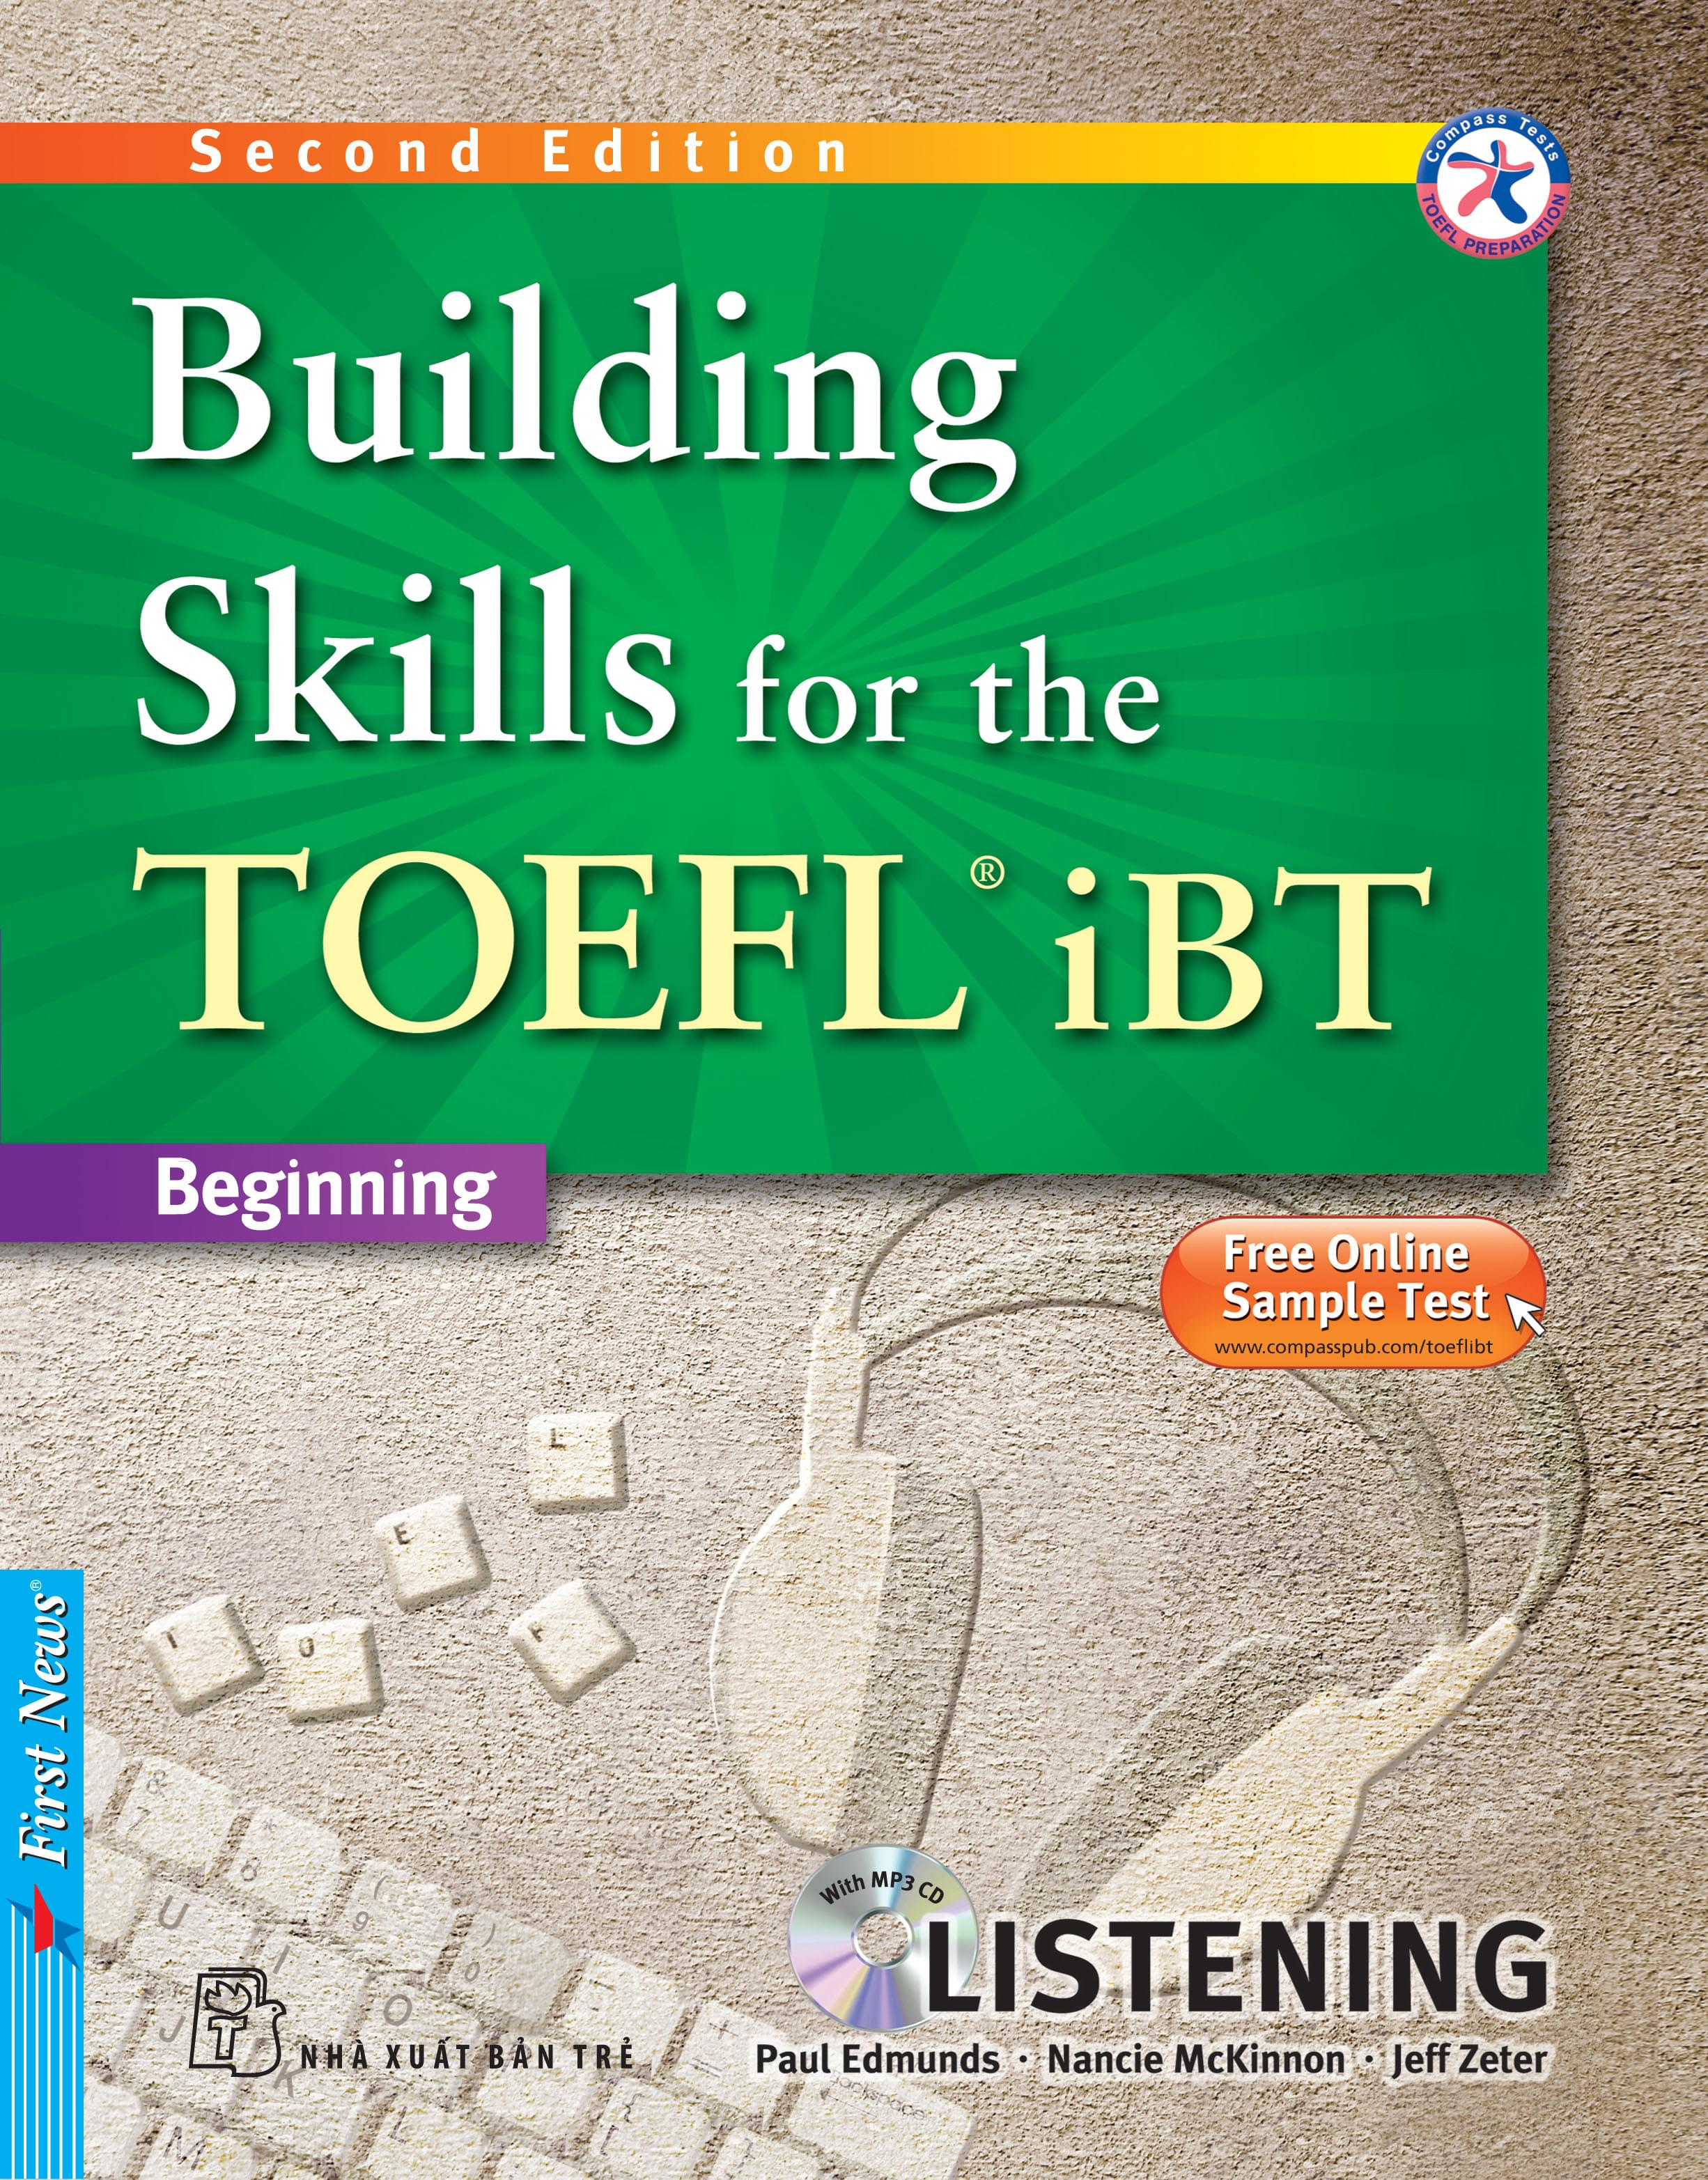 BUILDING SKILLS FOR THE TOEFL IBT - LISTENING (Kèm CD MP3)